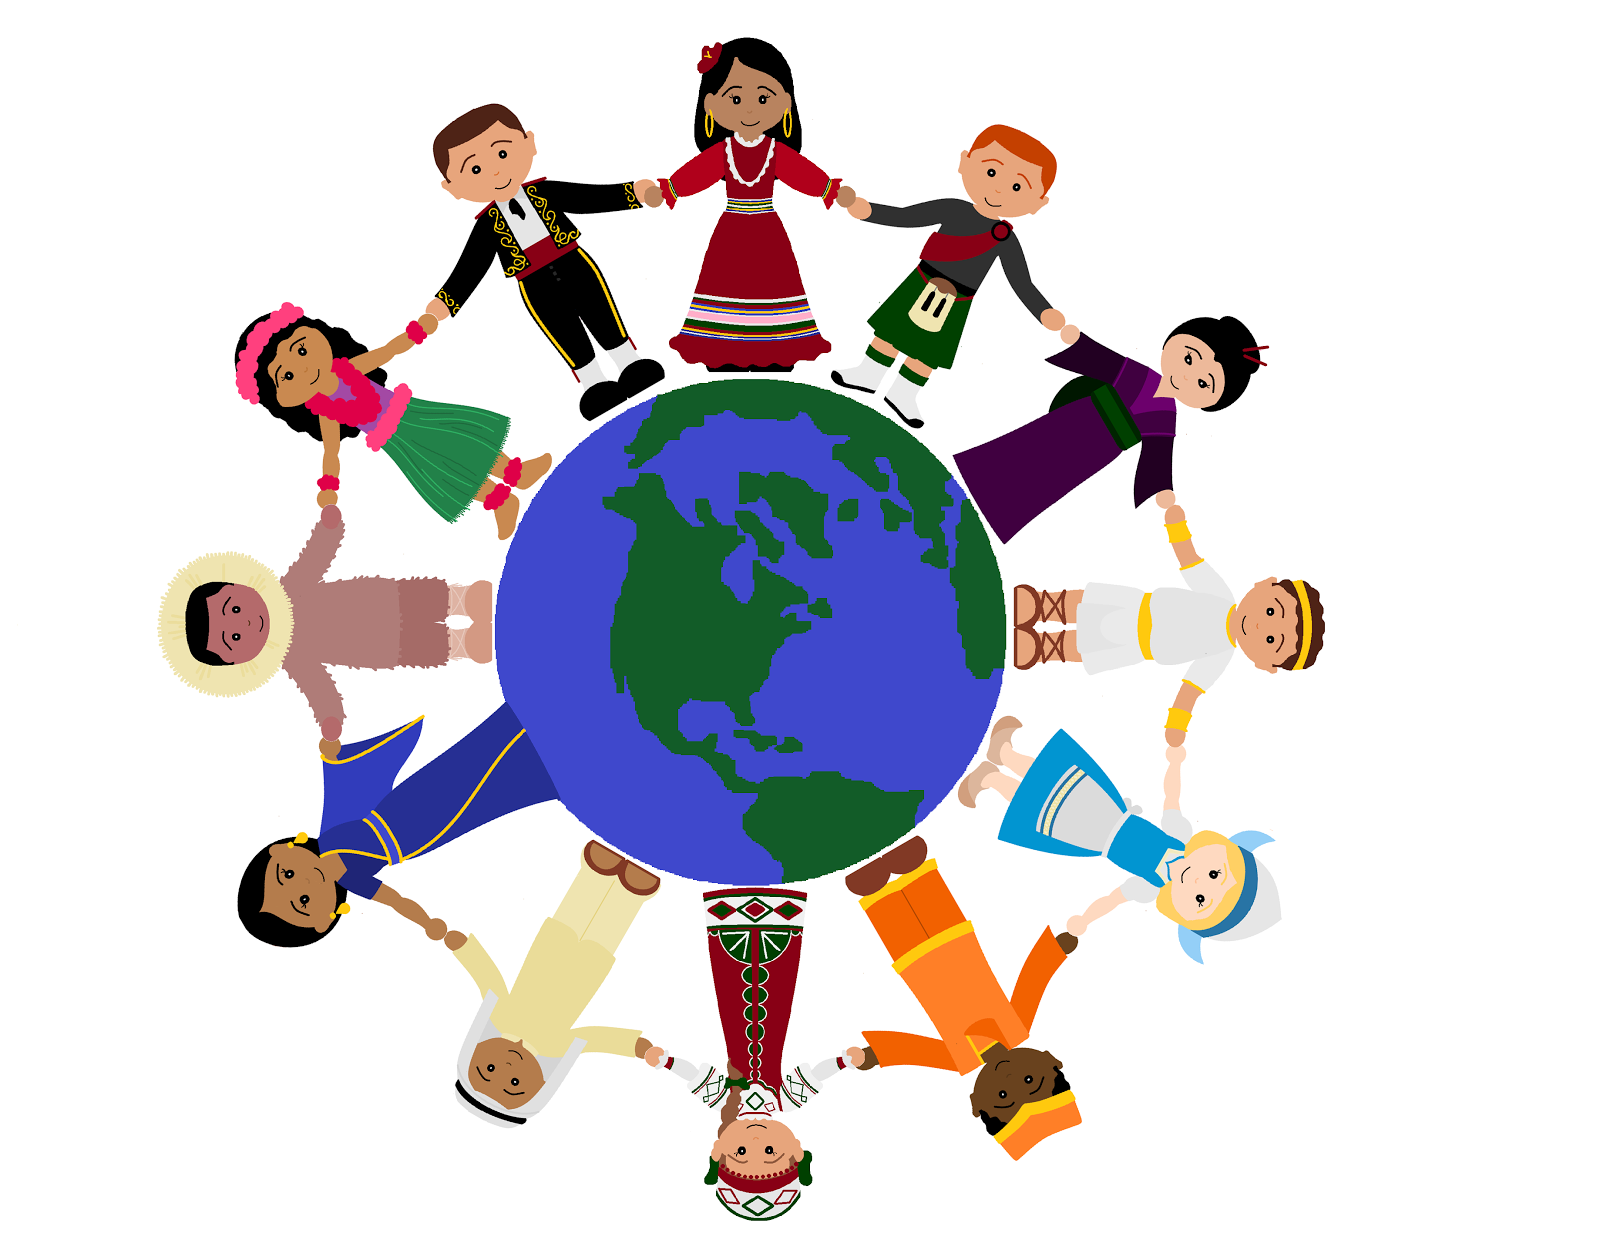 We are the world clipart.